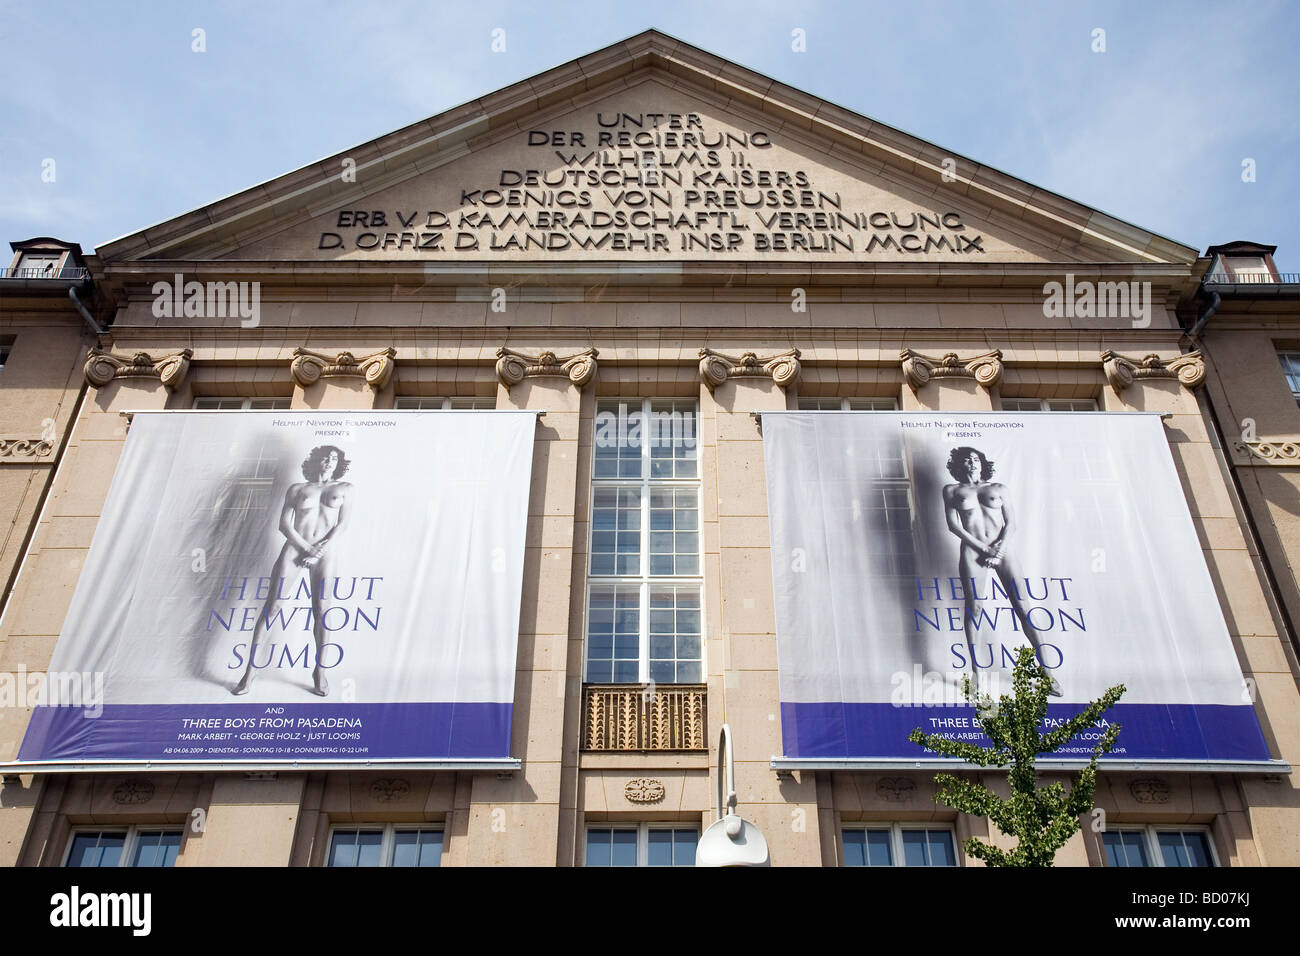 Helmut Newton Stiftung - Museum for Photography, Berlin, Germany - Stock Image